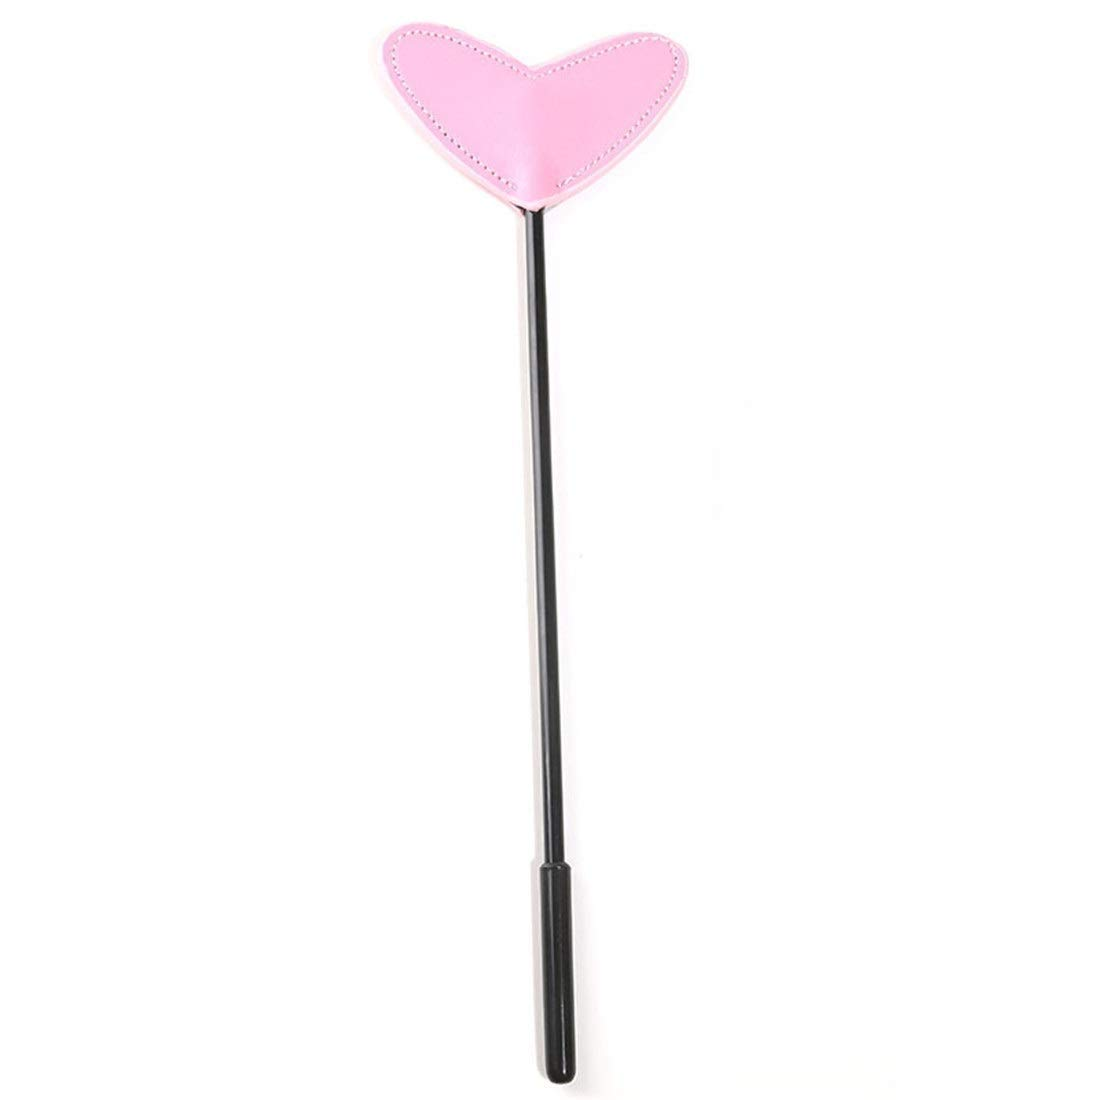 Qbyoot Adult Sexy Feather Leather Love Heart-Shaped Spanking Paddle by Qbyoot